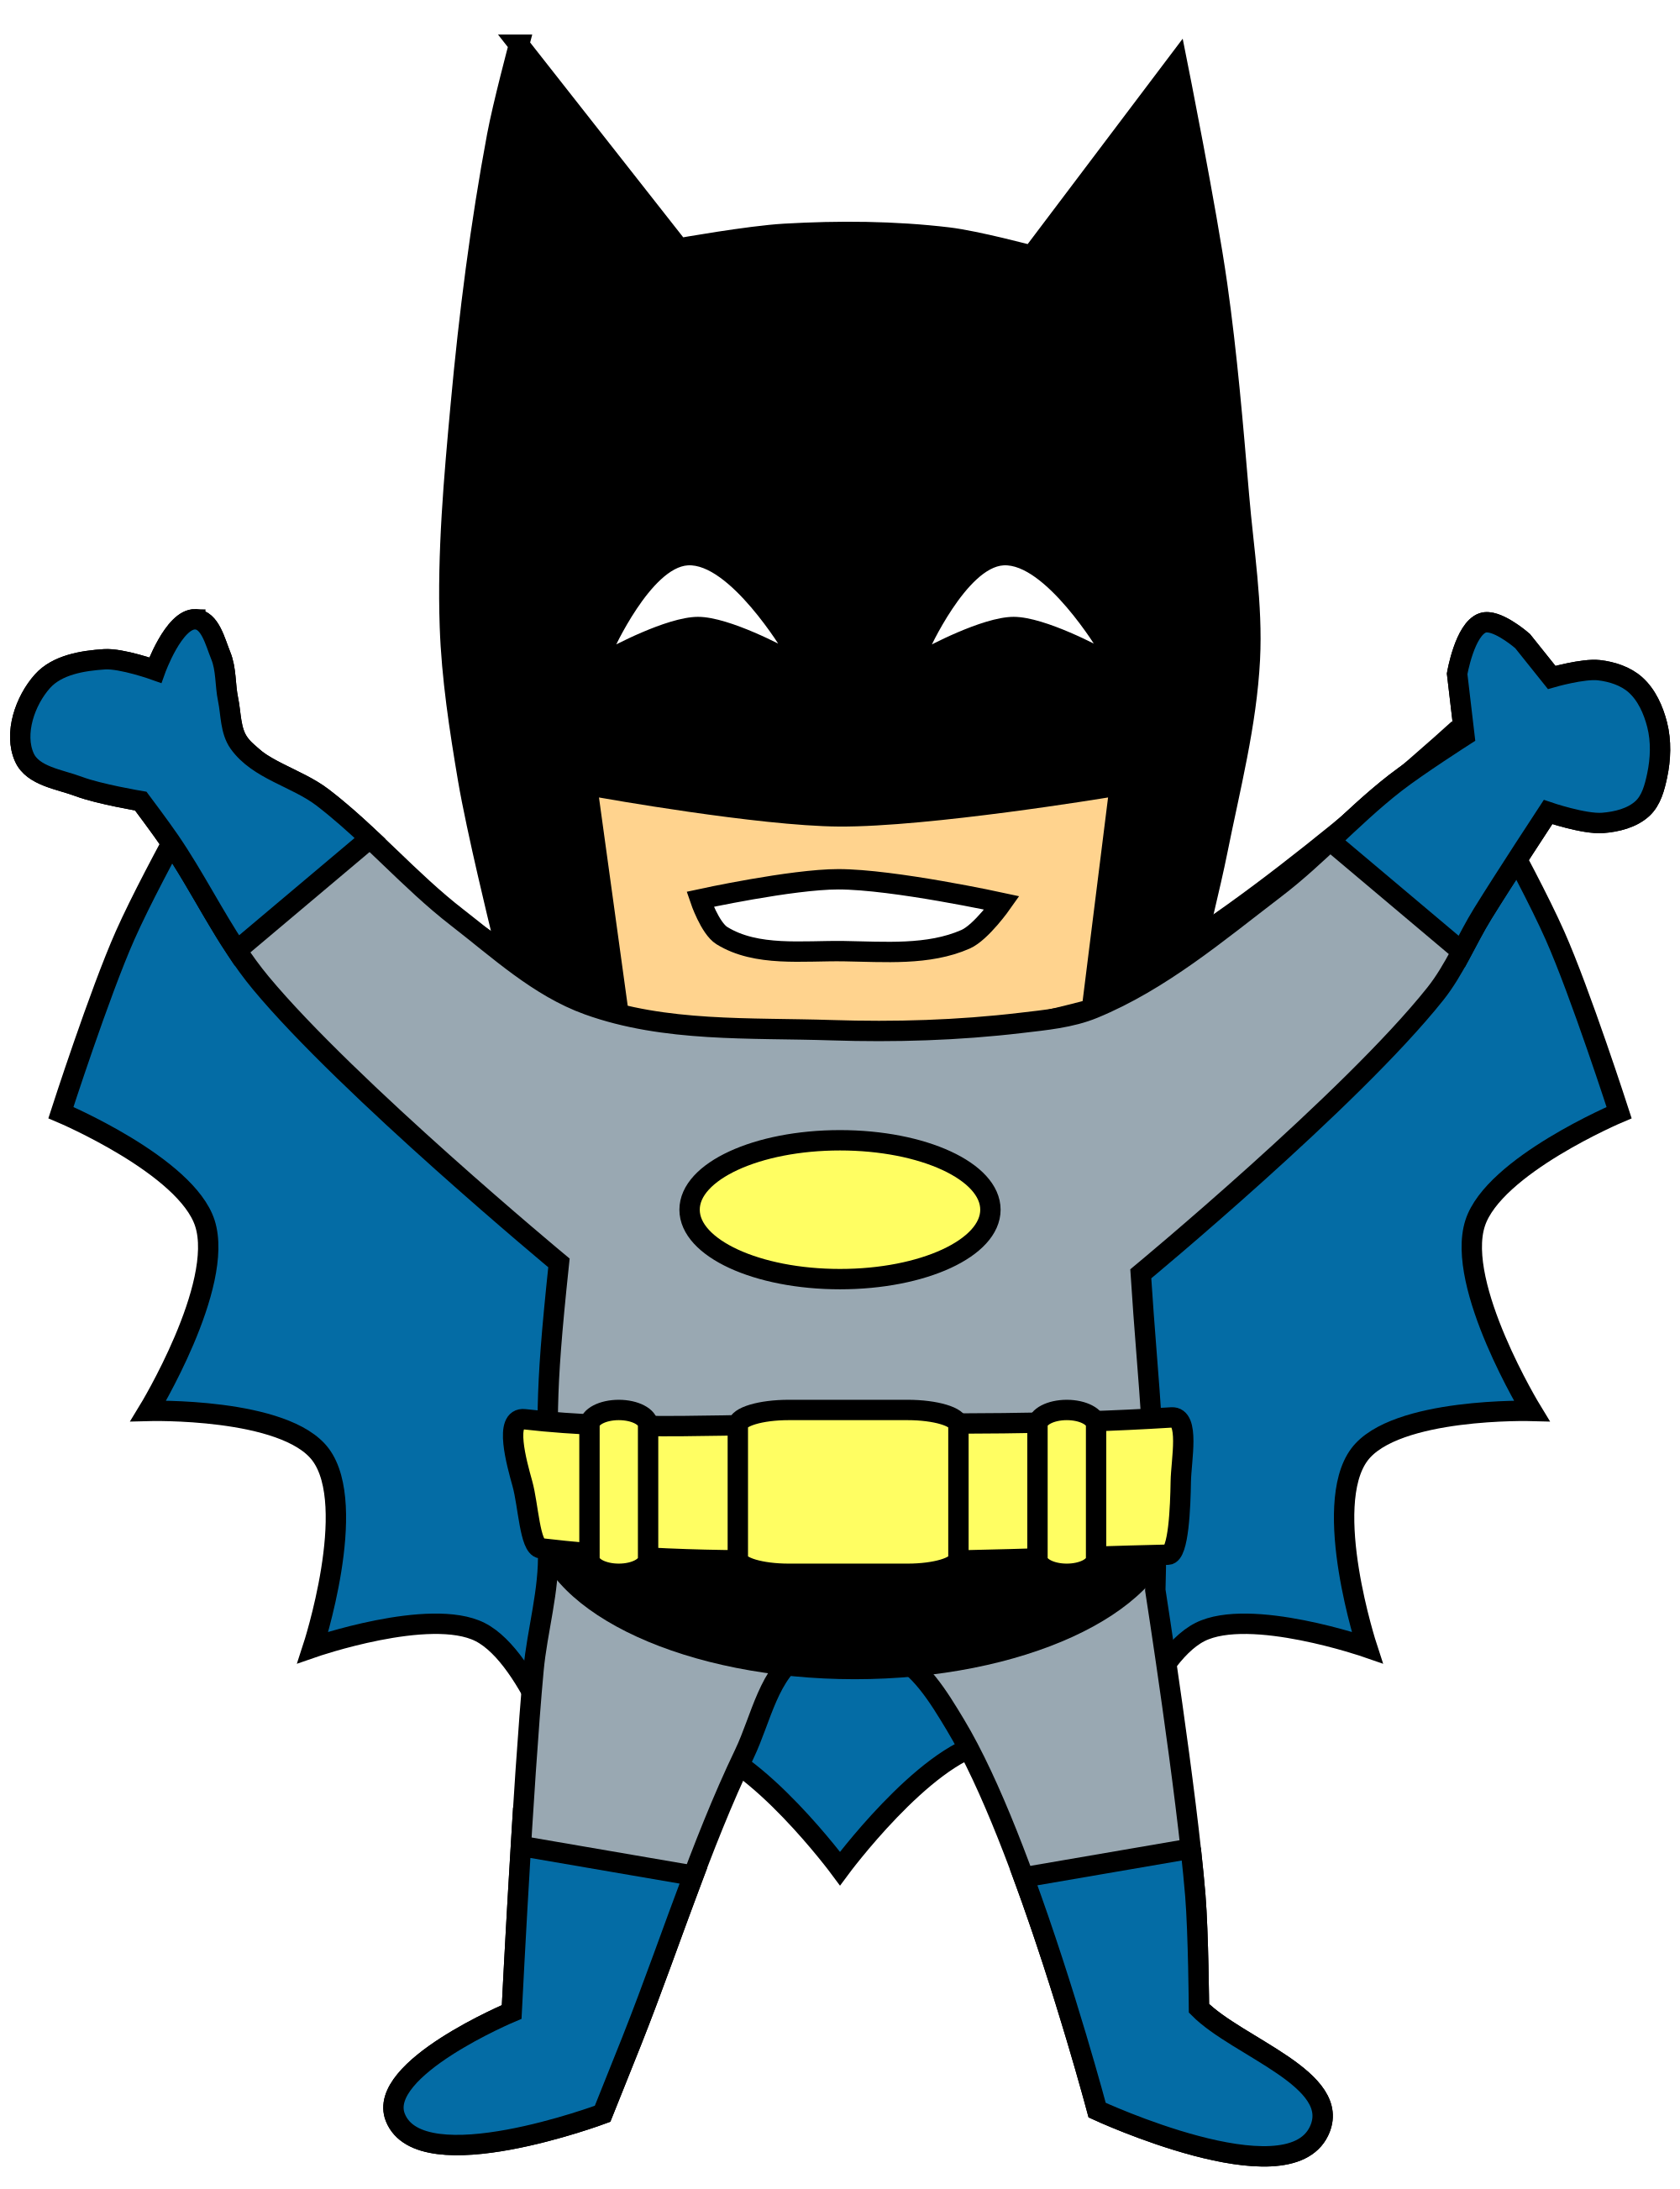 Phone clipart svg. File batman wikimedia commons